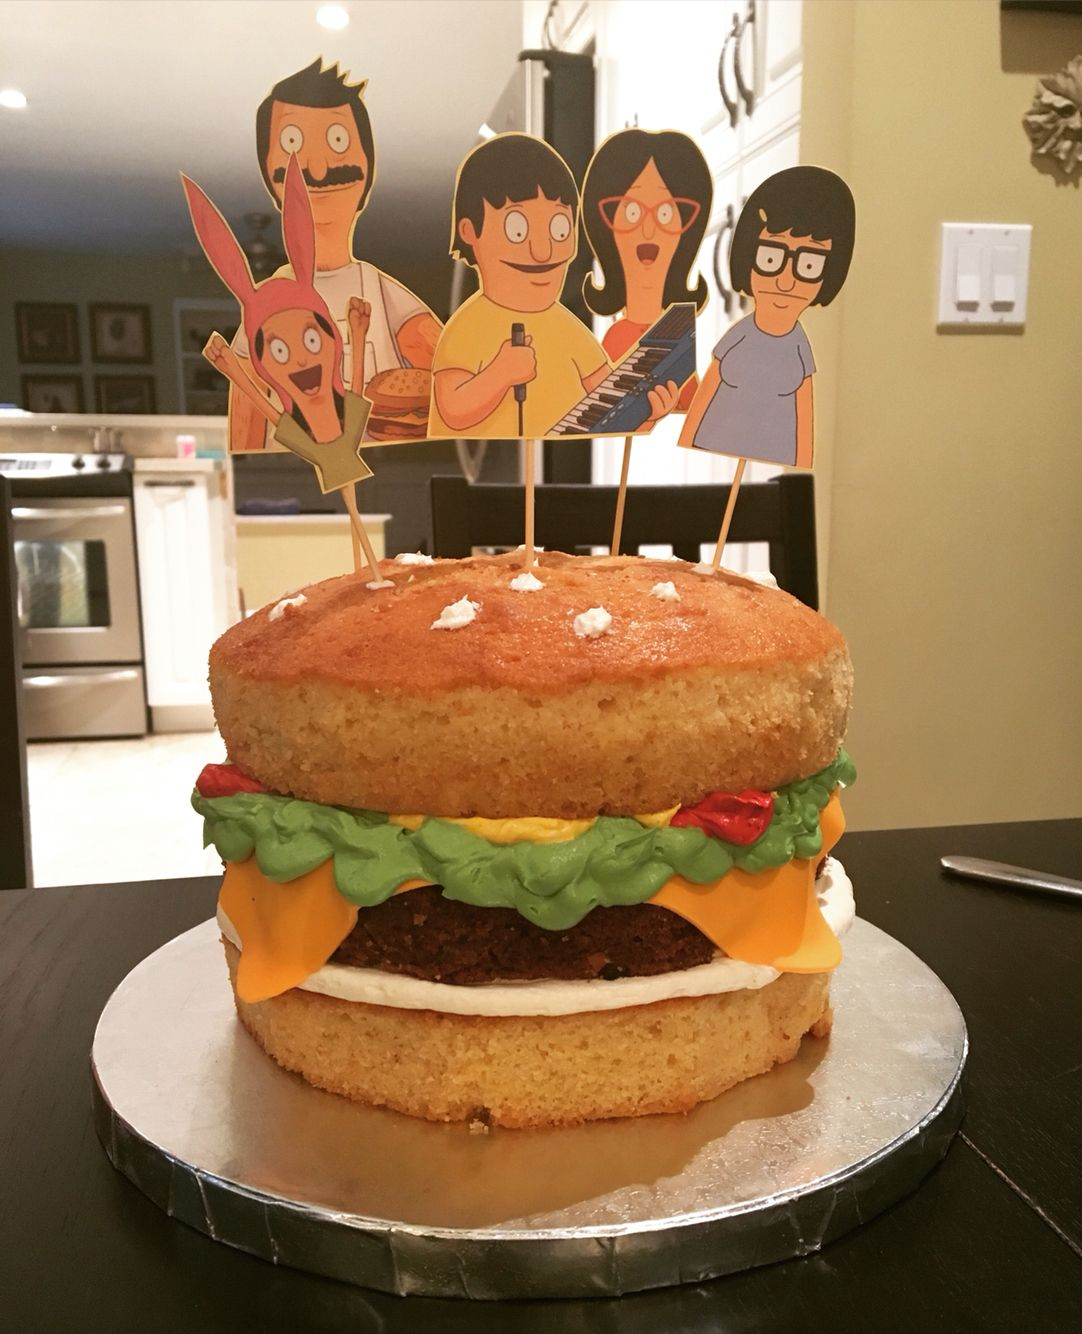 Bobs Burgers Cake I Want This For My Birthday This Year Cooking